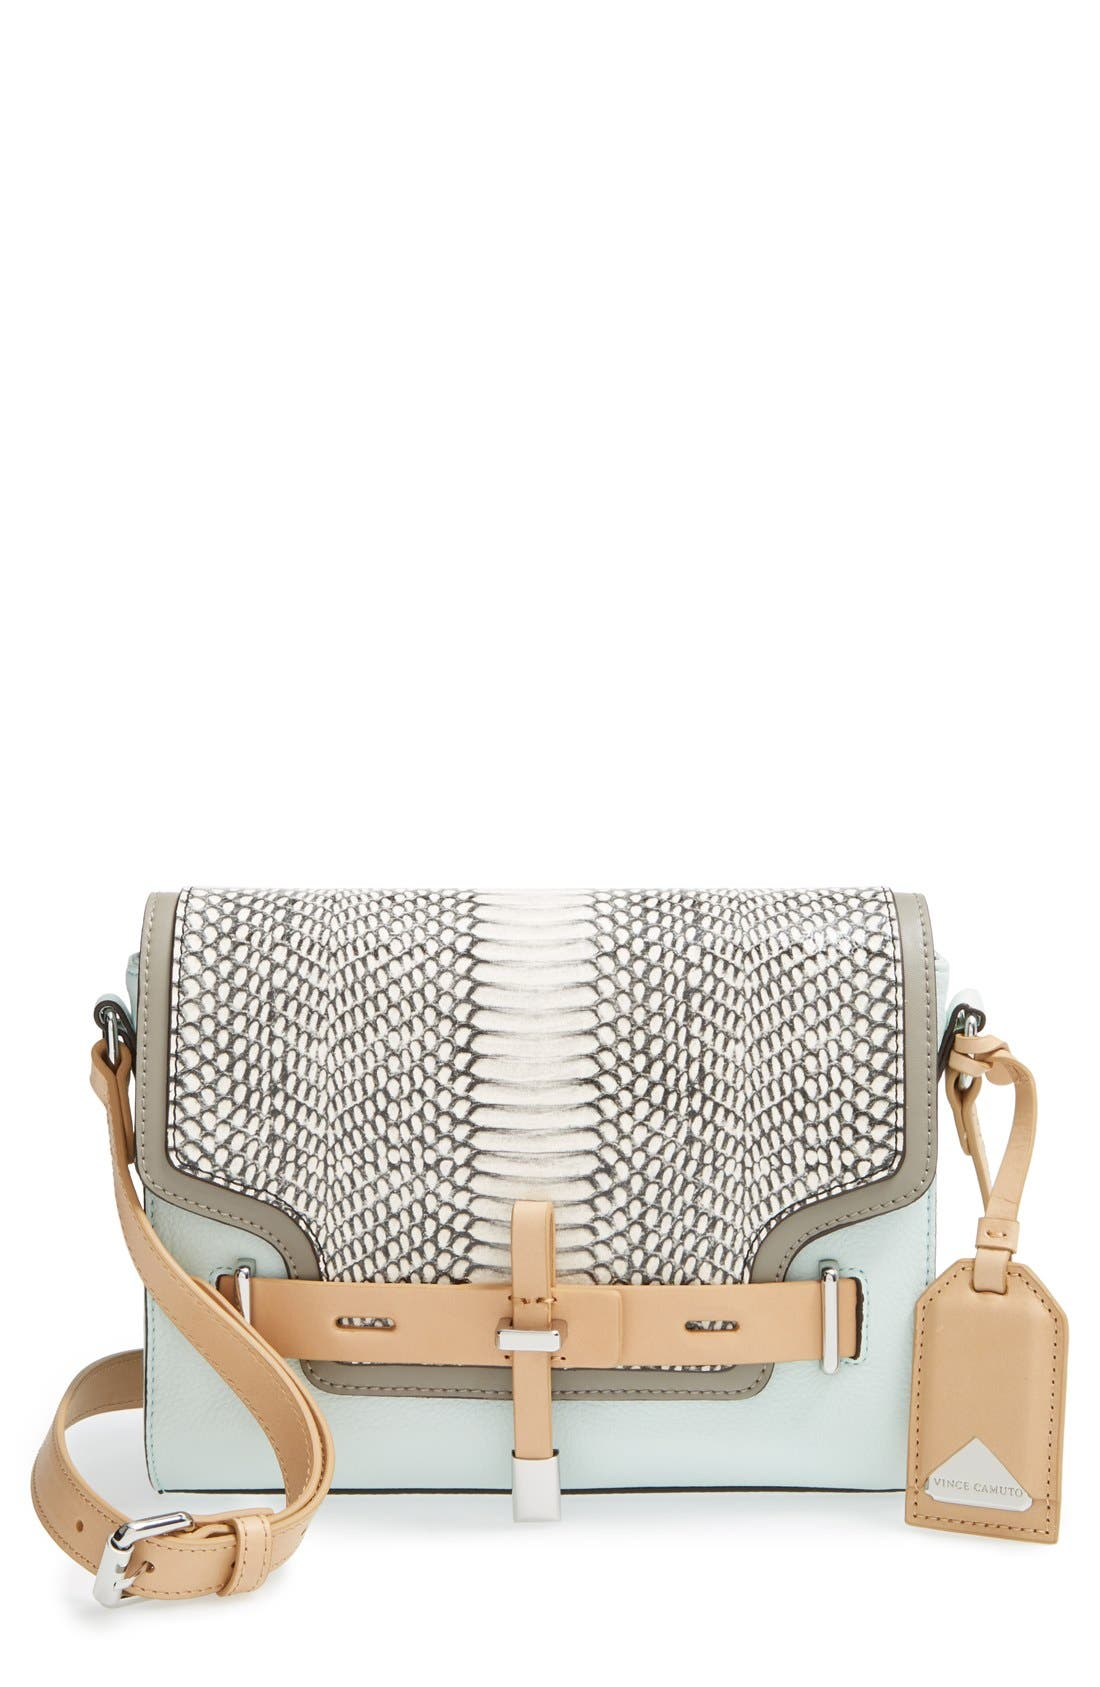 Main Image - Vince Camuto 'Max' Leather Crossbody Bag